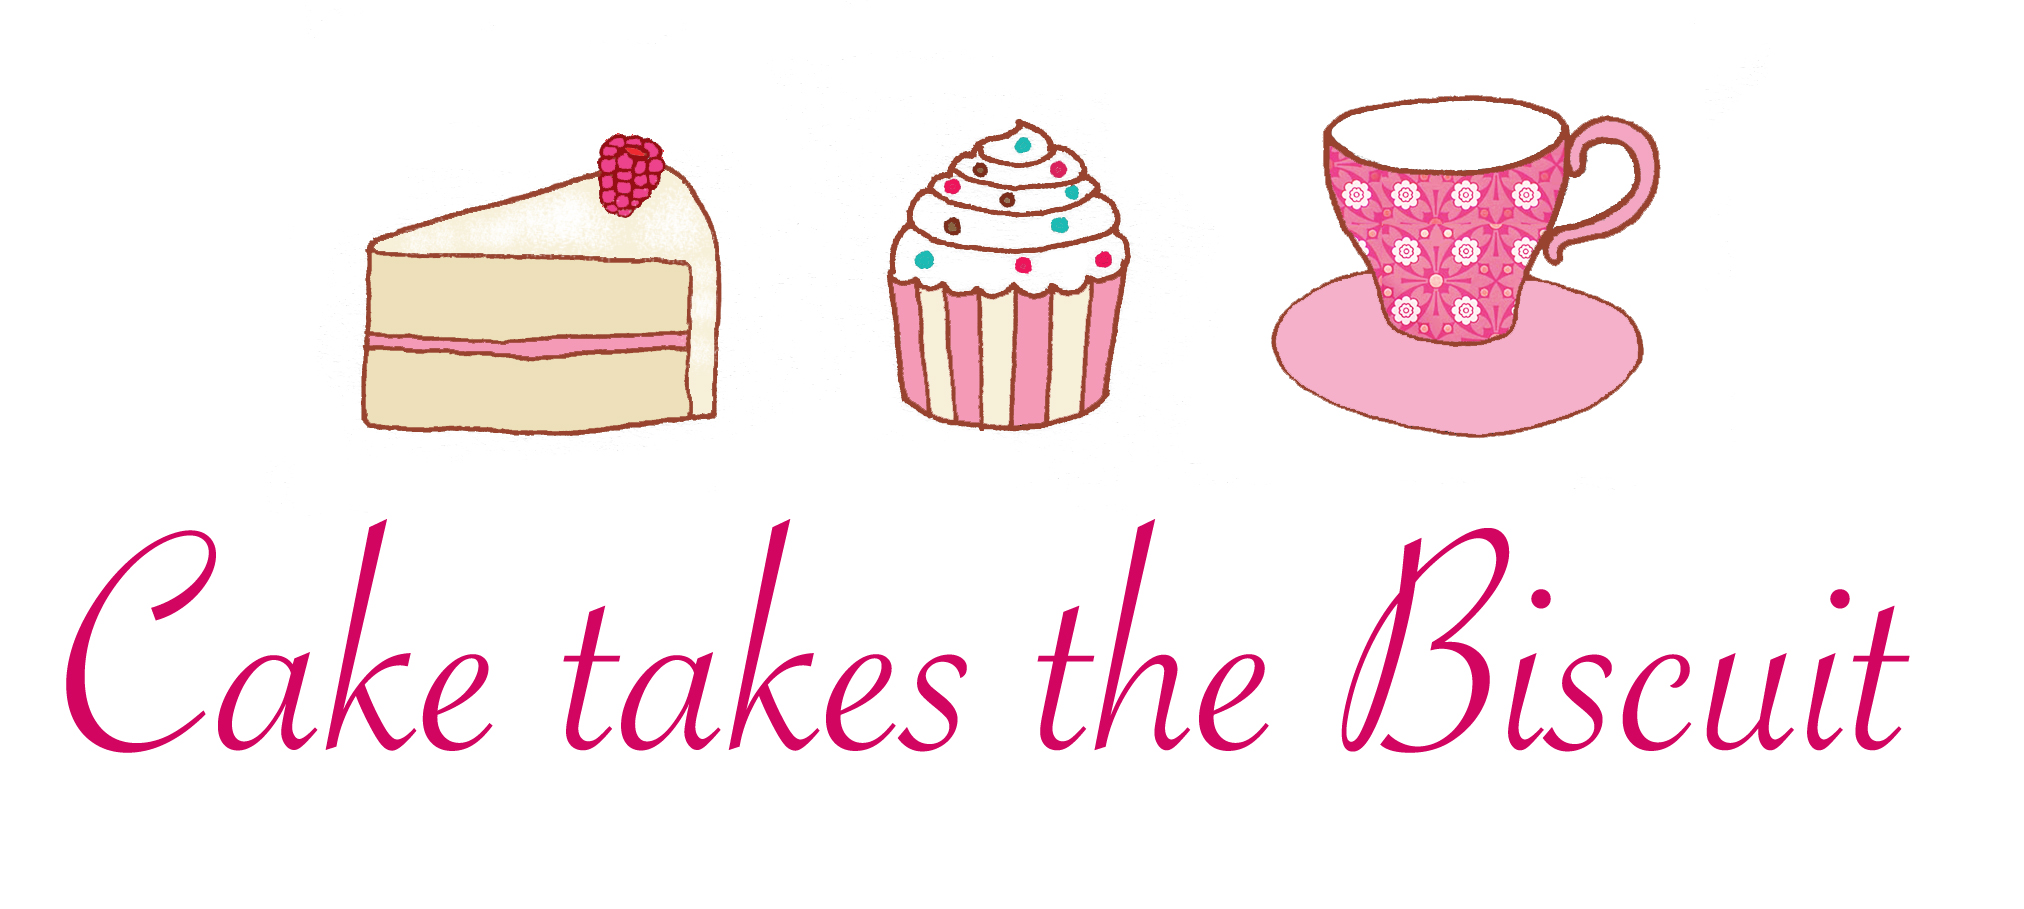 afternoon teas – Cake blog with recipes and reviews | Cake ...